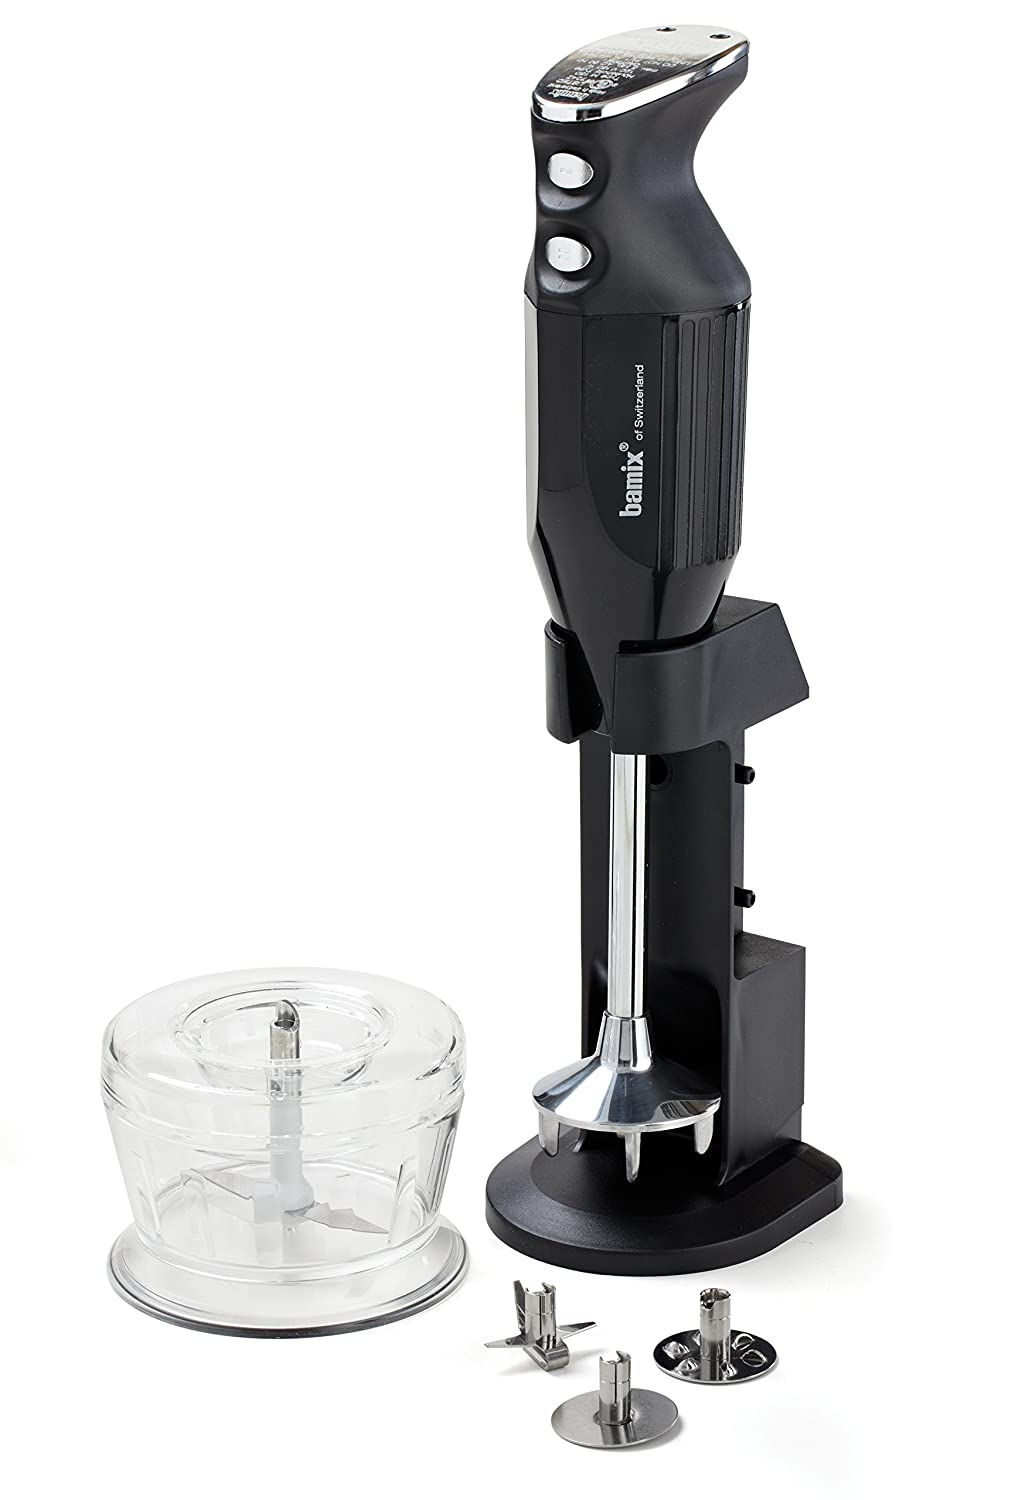 Bamix Deluxe M150 - 150 Watt 2 Speed 3 Blade Immersion Hand Blender with Dry Grinder and Table Stand